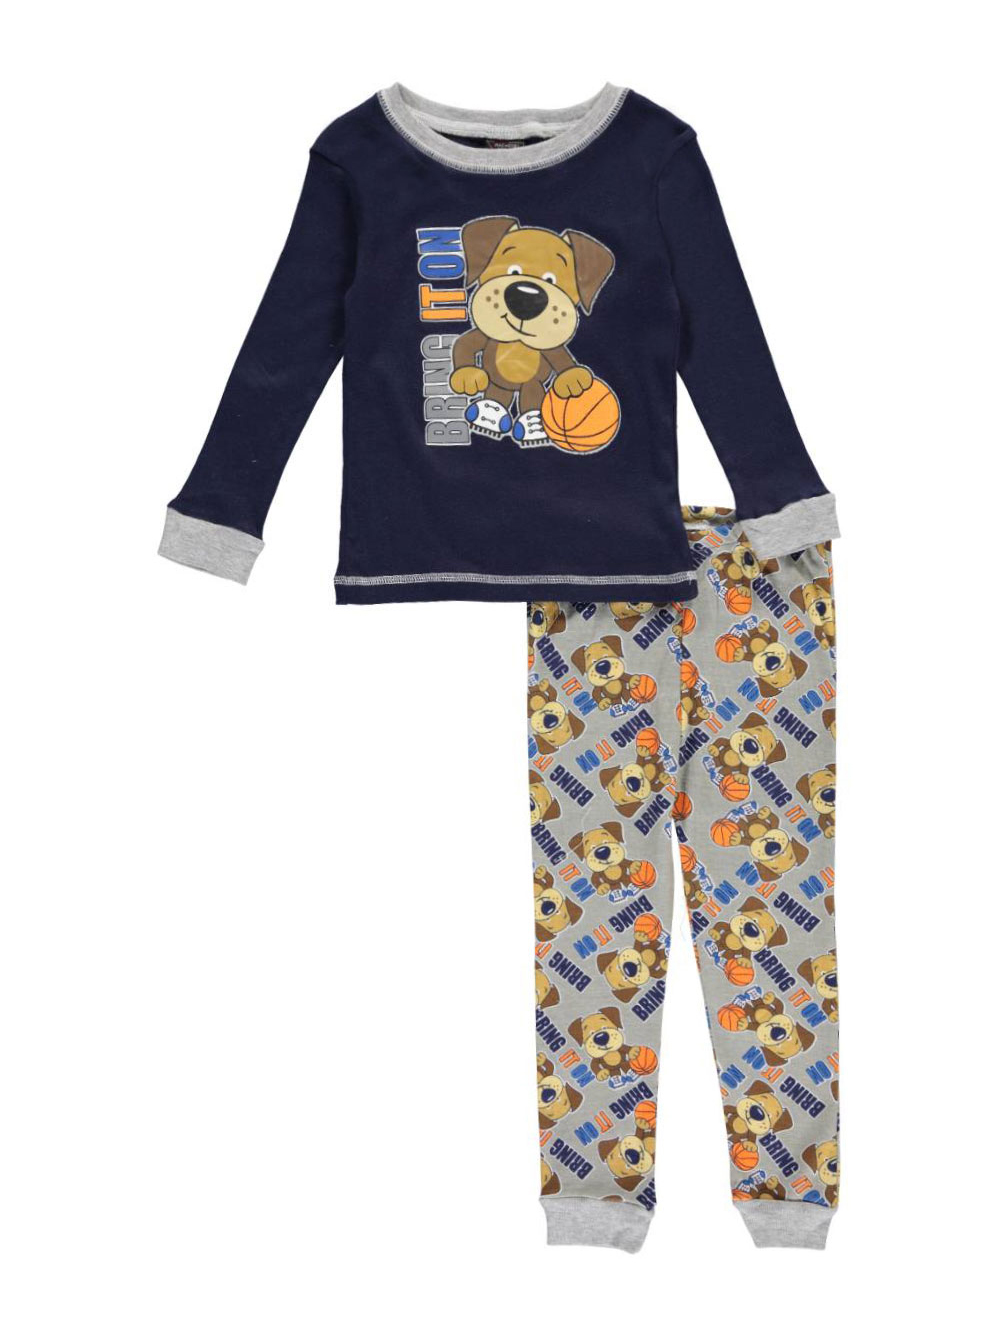 Image of Mac Henry Little Boys Toddler Bring It On 2Piece Pajamas Sizes 2T  4T  navymulti 3t